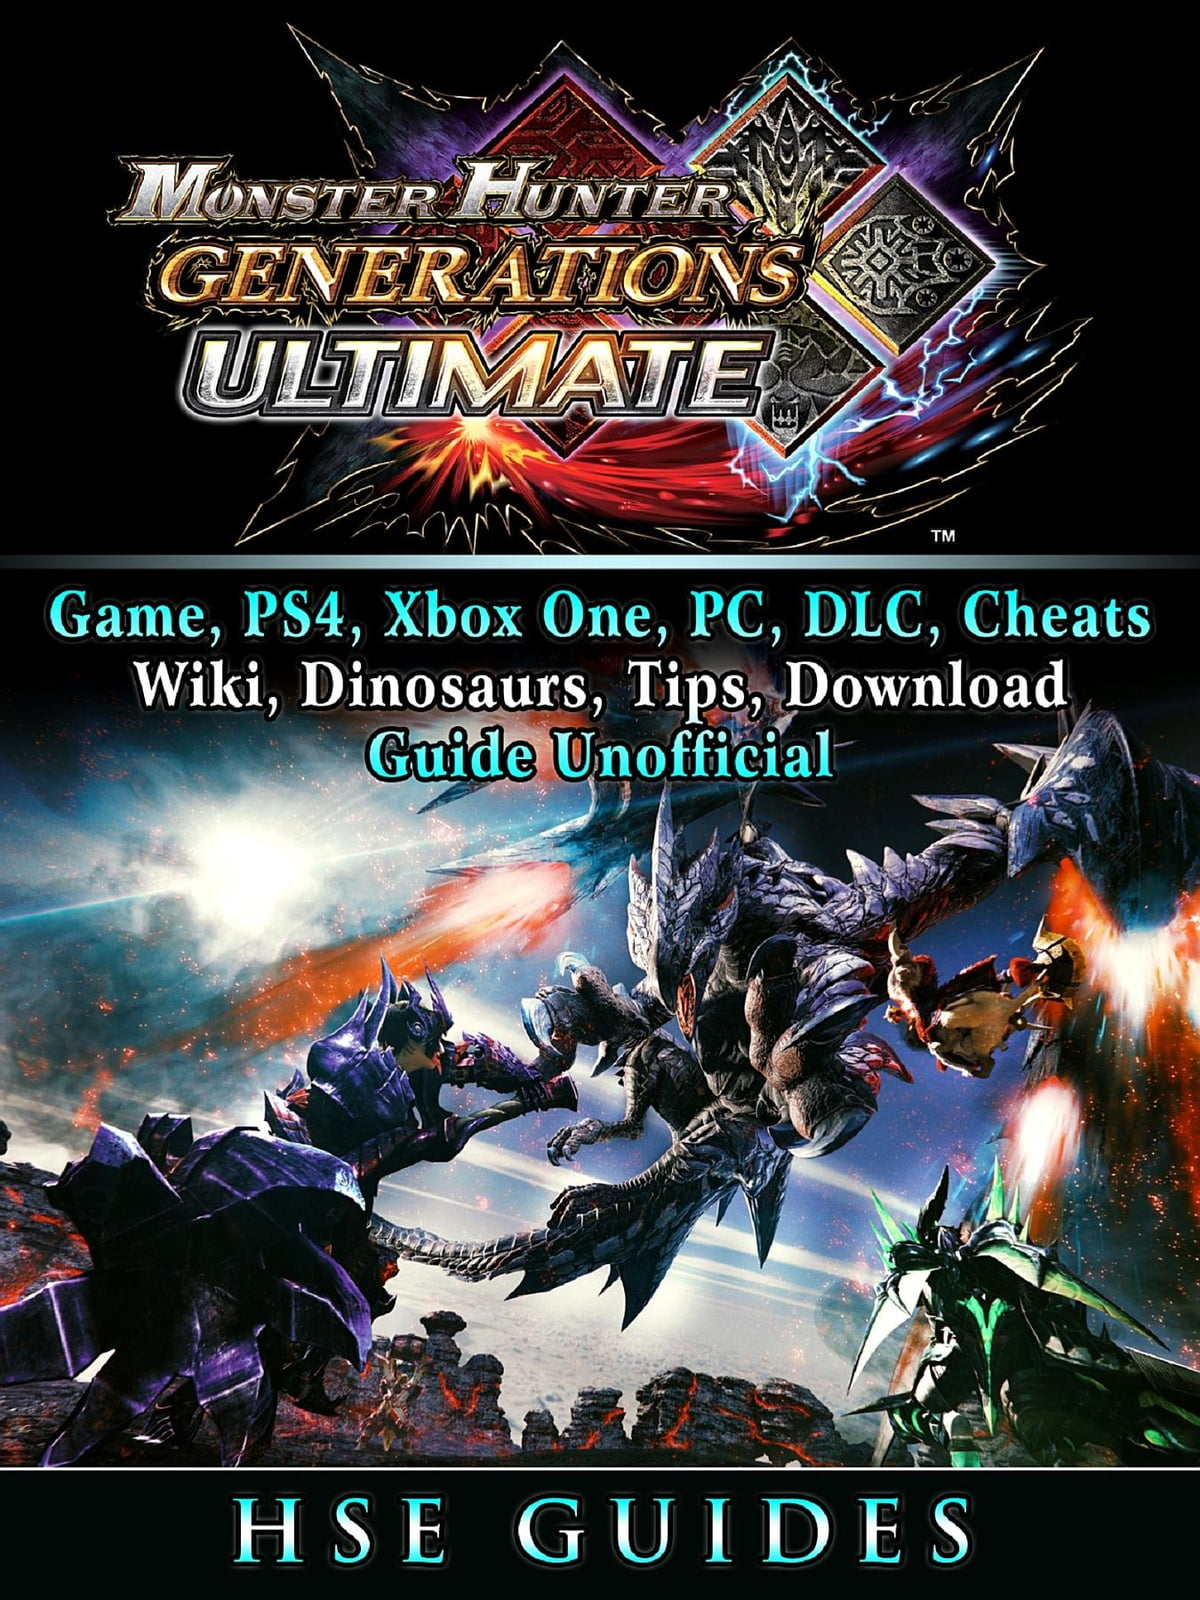 Monster Hunter Generations Ultimate, Game, Wiki, Monster List, Weapons,  Alchemy, Tips, Cheats, Guide Unofficial ebook by Hse Guides - Rakuten Kobo